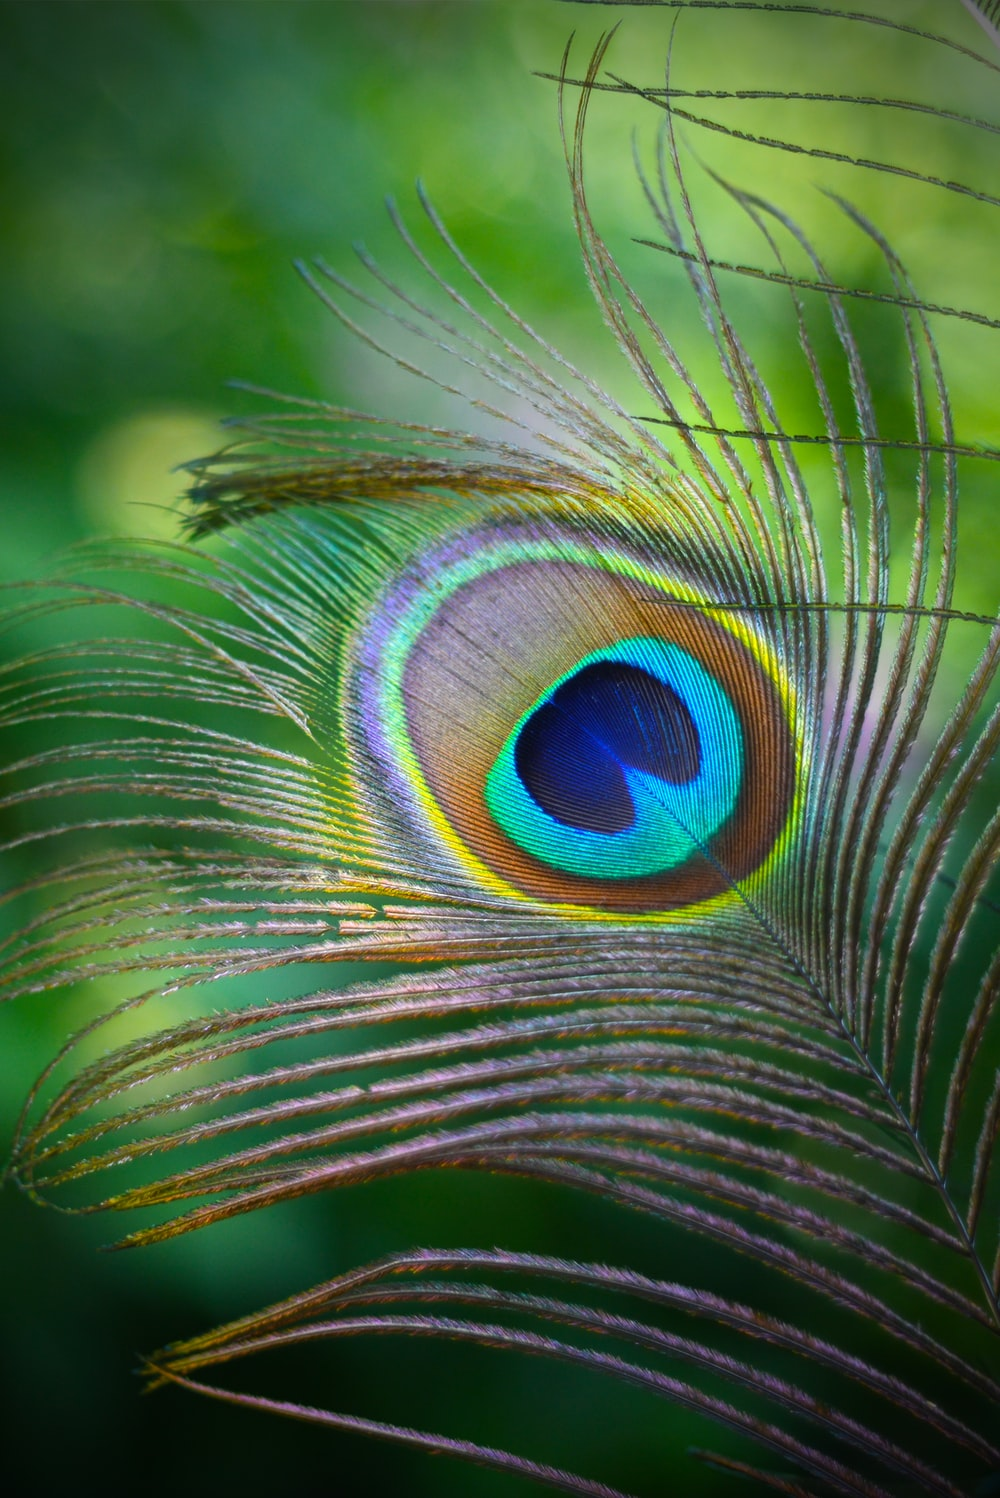 teal and green peafowl feather